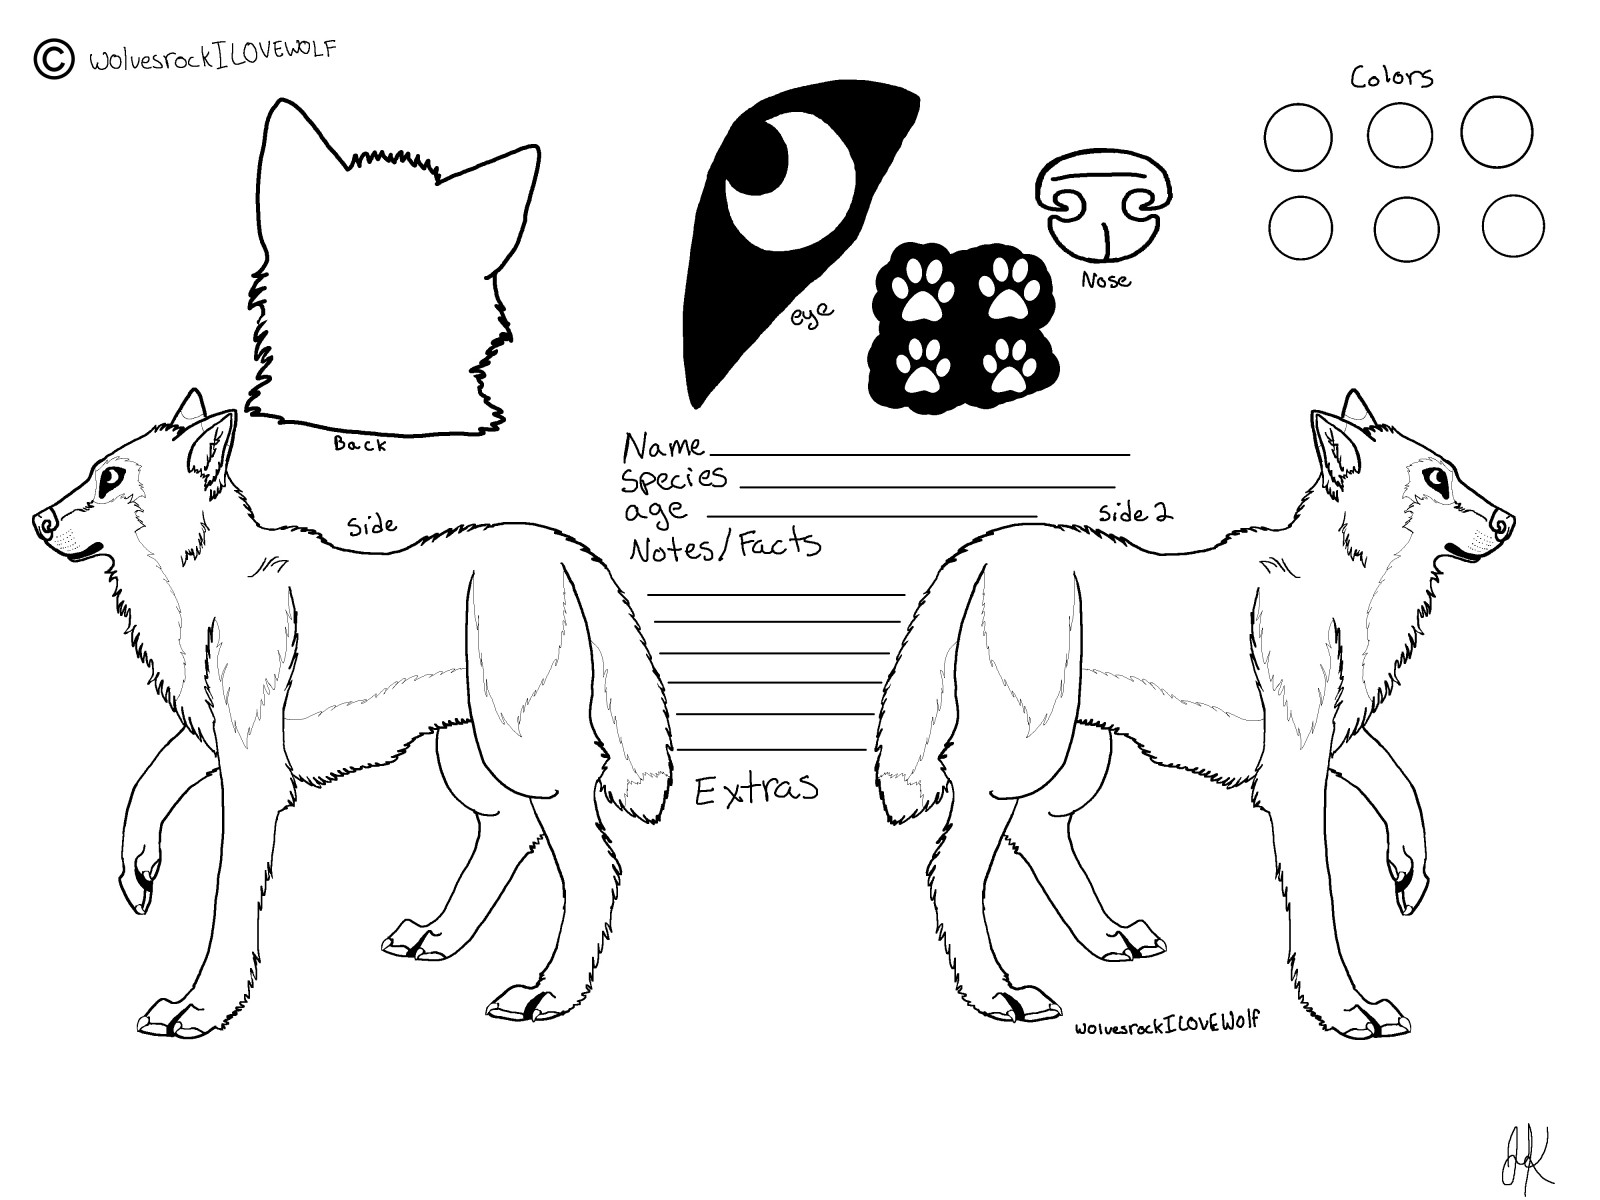 free_wolf_reference_sheet_line_art_by_wolvesrockilovewolf-d4msscw.jpg